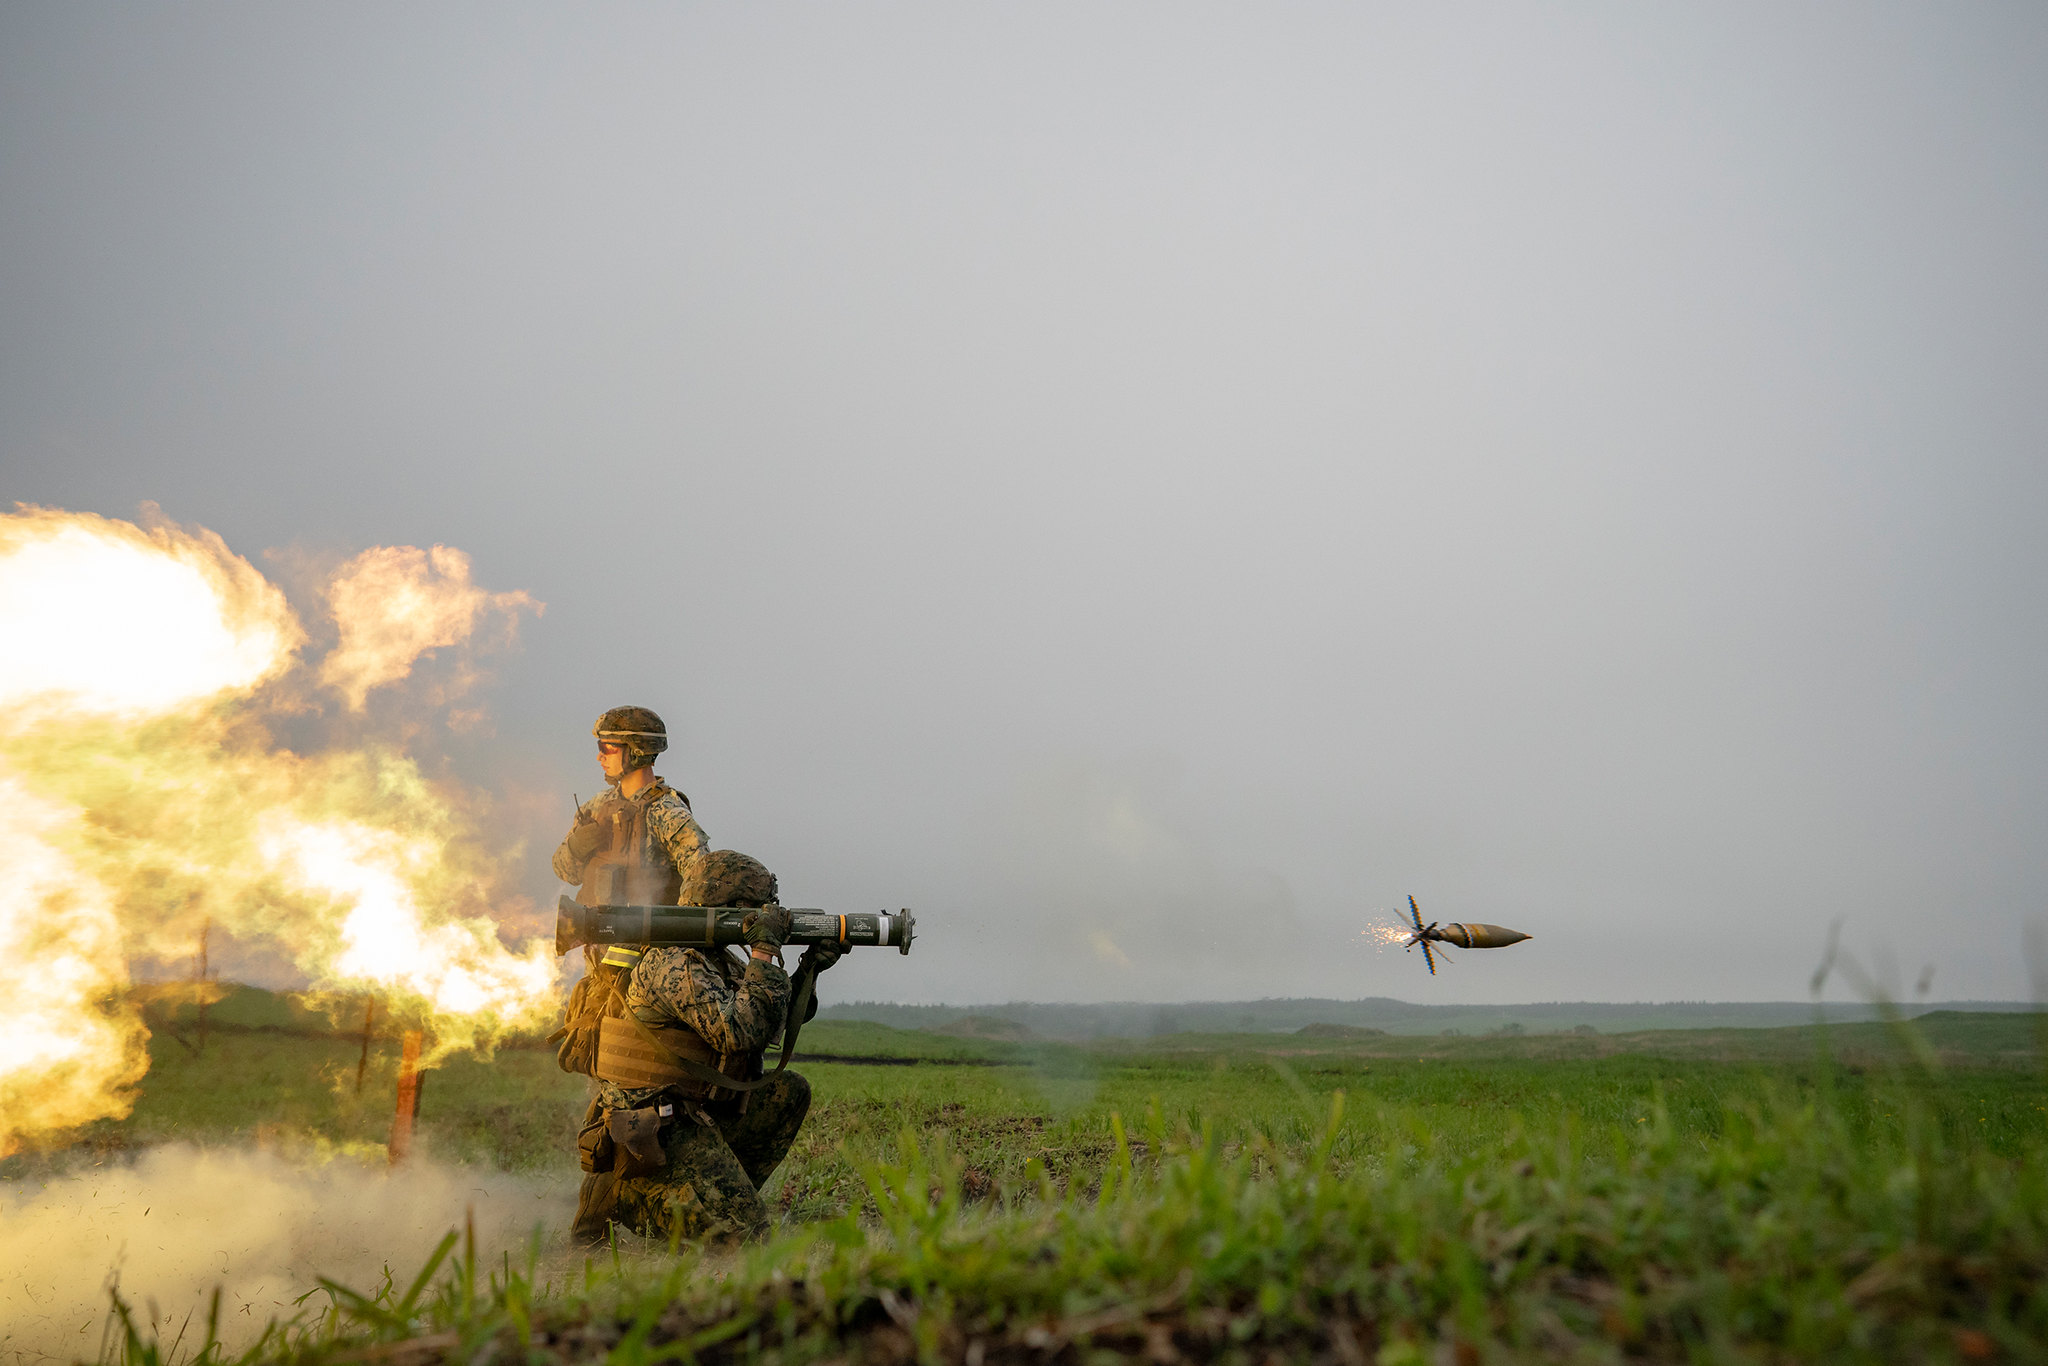 Cpl. Chris Anderson fires an AT4 rocket launcher on May 22, 2019, during a live fire training exercise at Combined Arms Training Center, Camp Fuji, Japan. (Cpl. Esgar Rojas/Marine Corps)